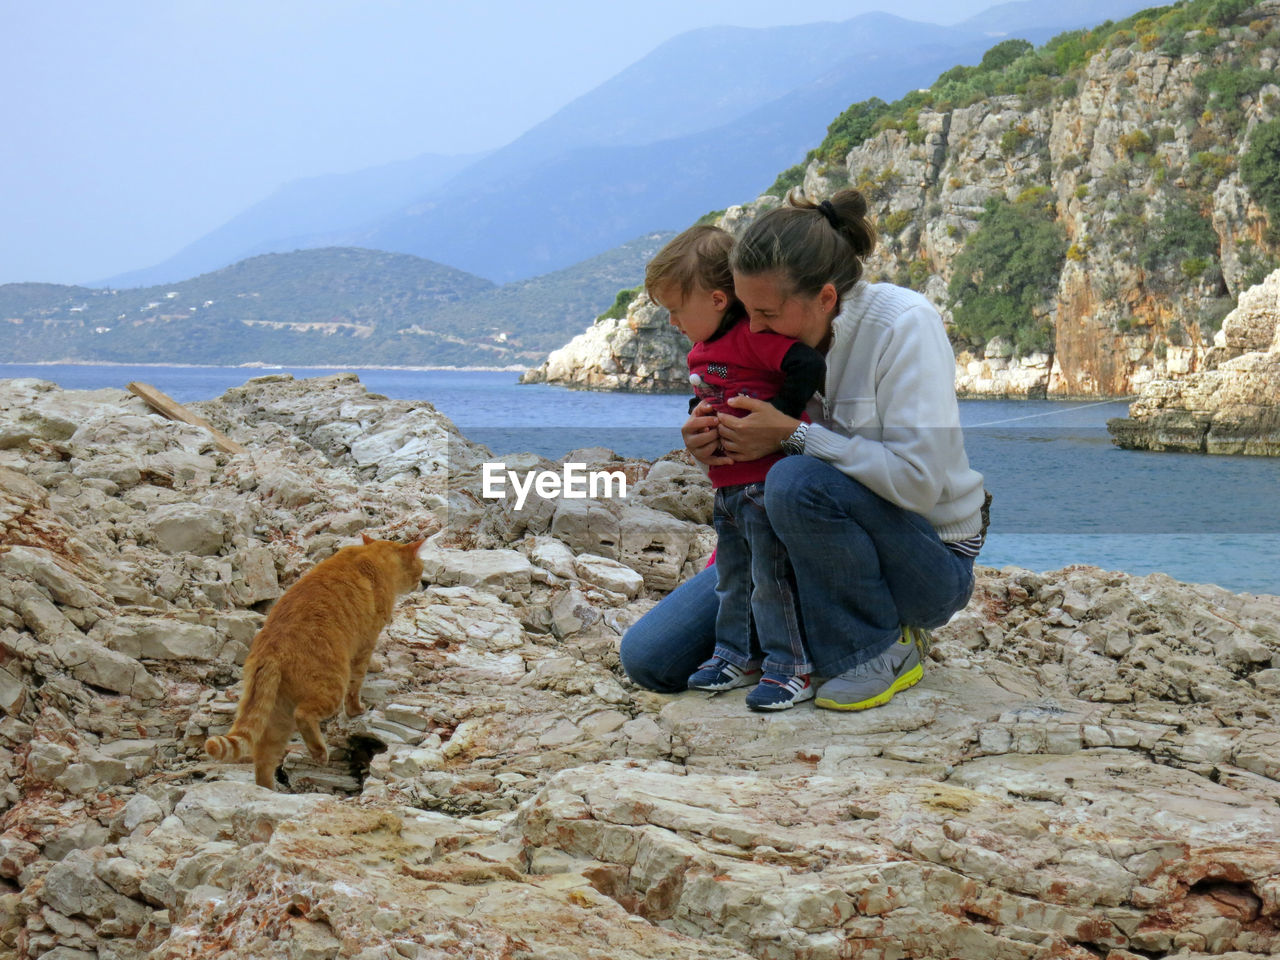 Woman with daughter looking at cat on rock formation by sea